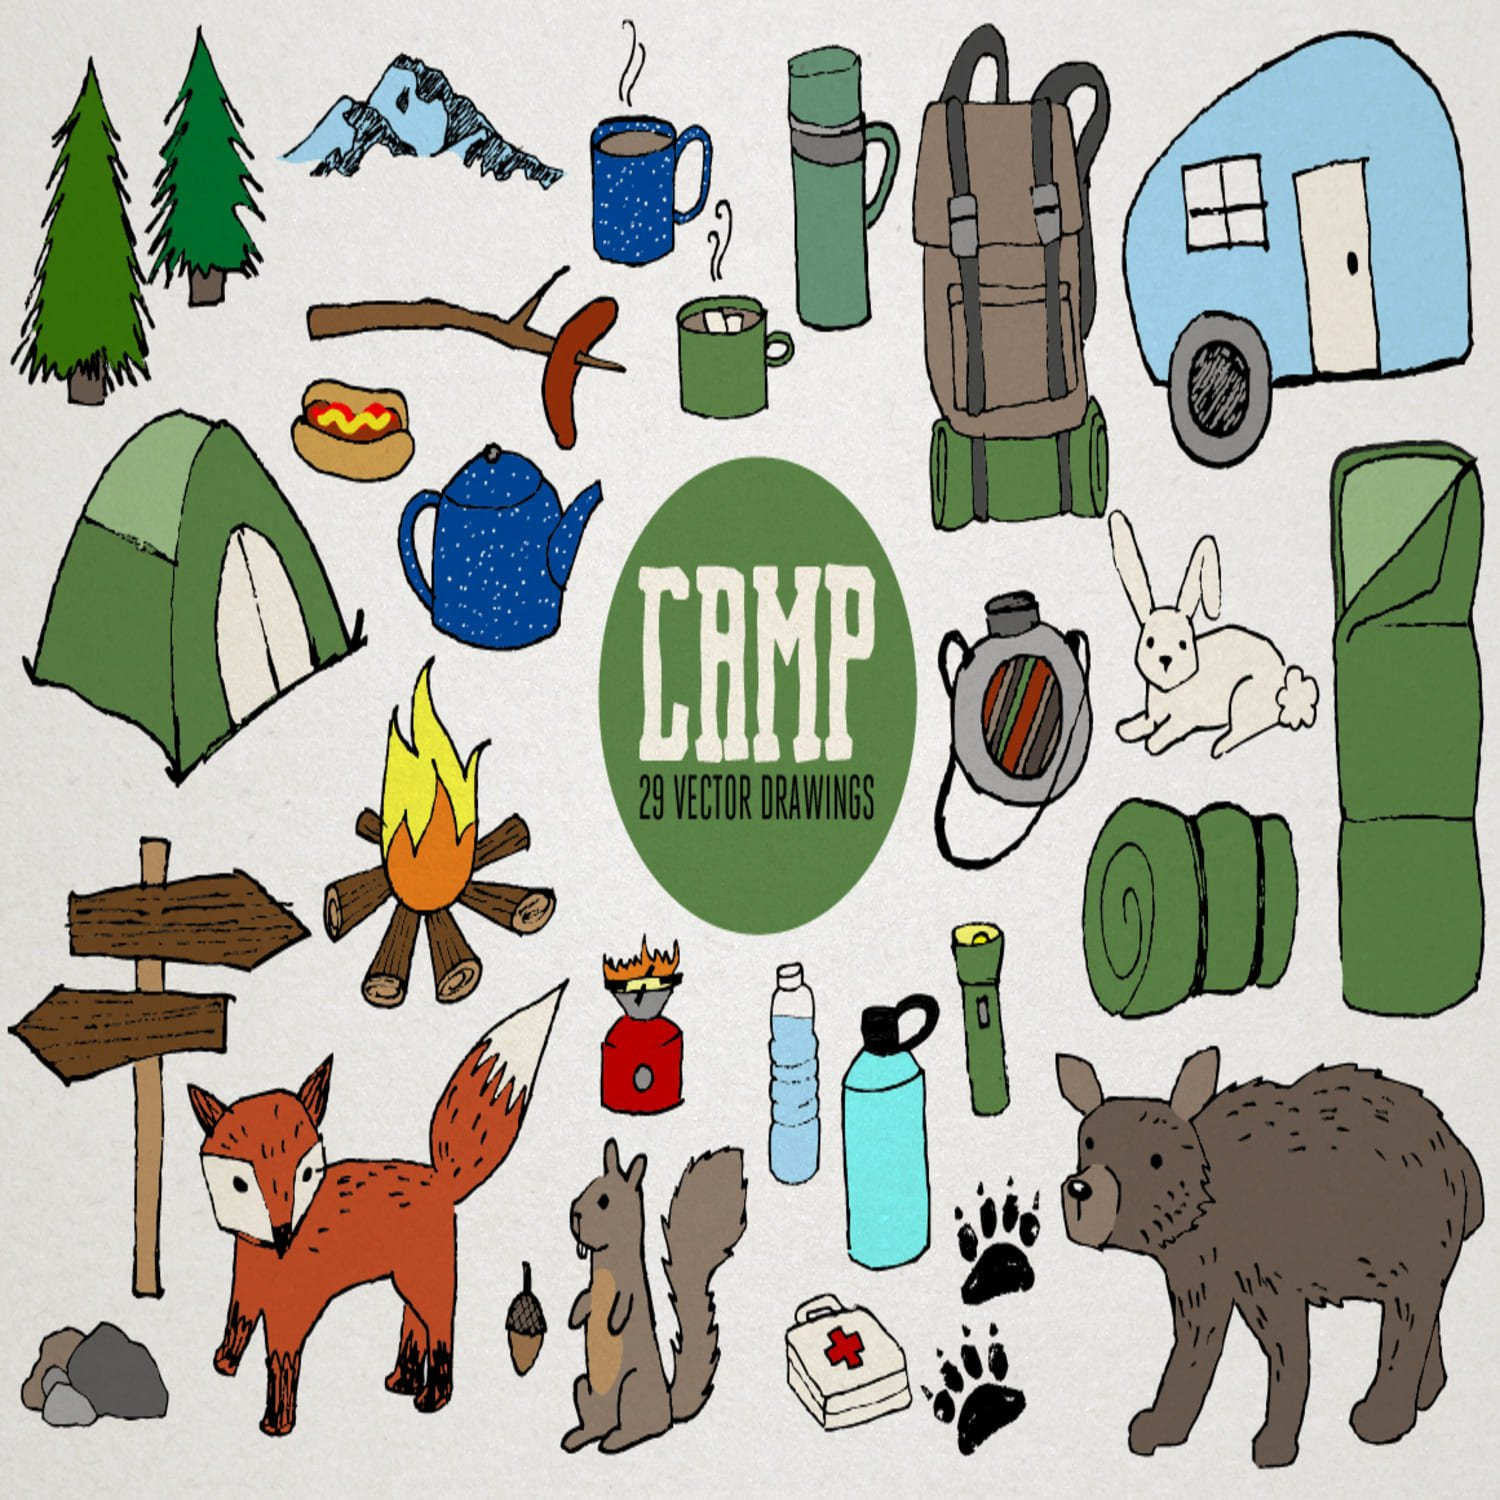 Camping Vector Illustrations main cover.